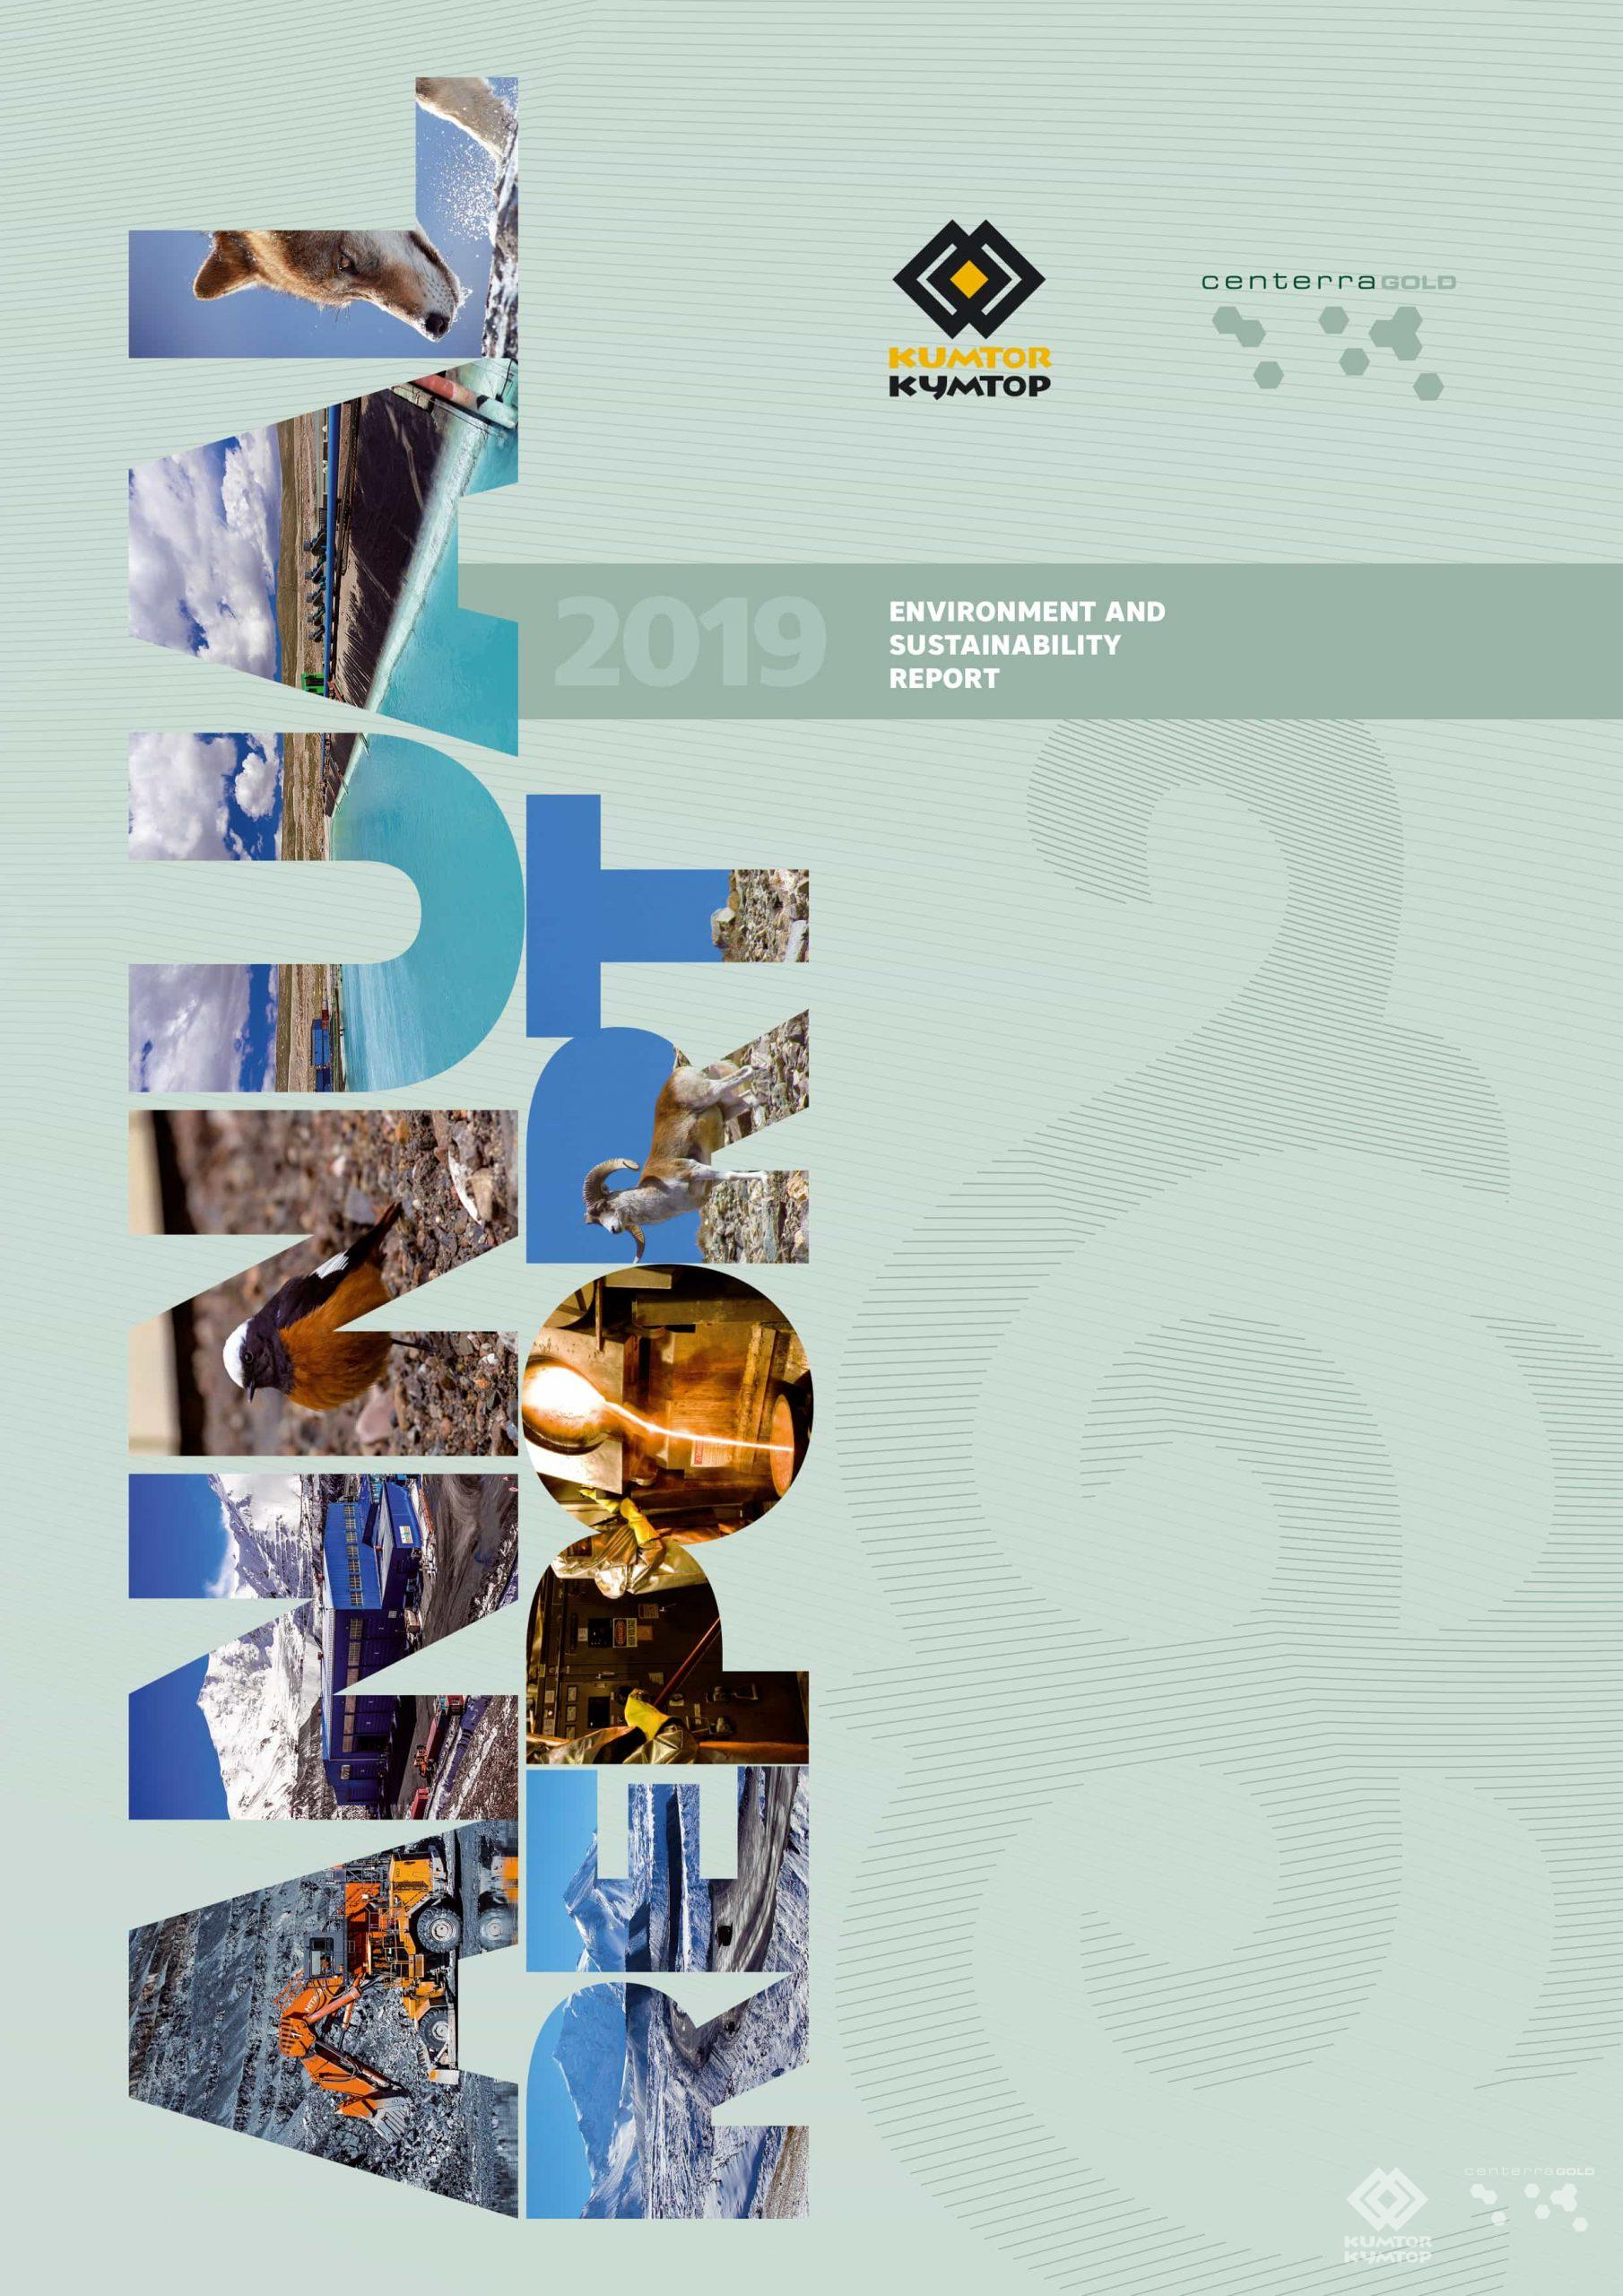 Annual Environment and Sustainability Report 2019